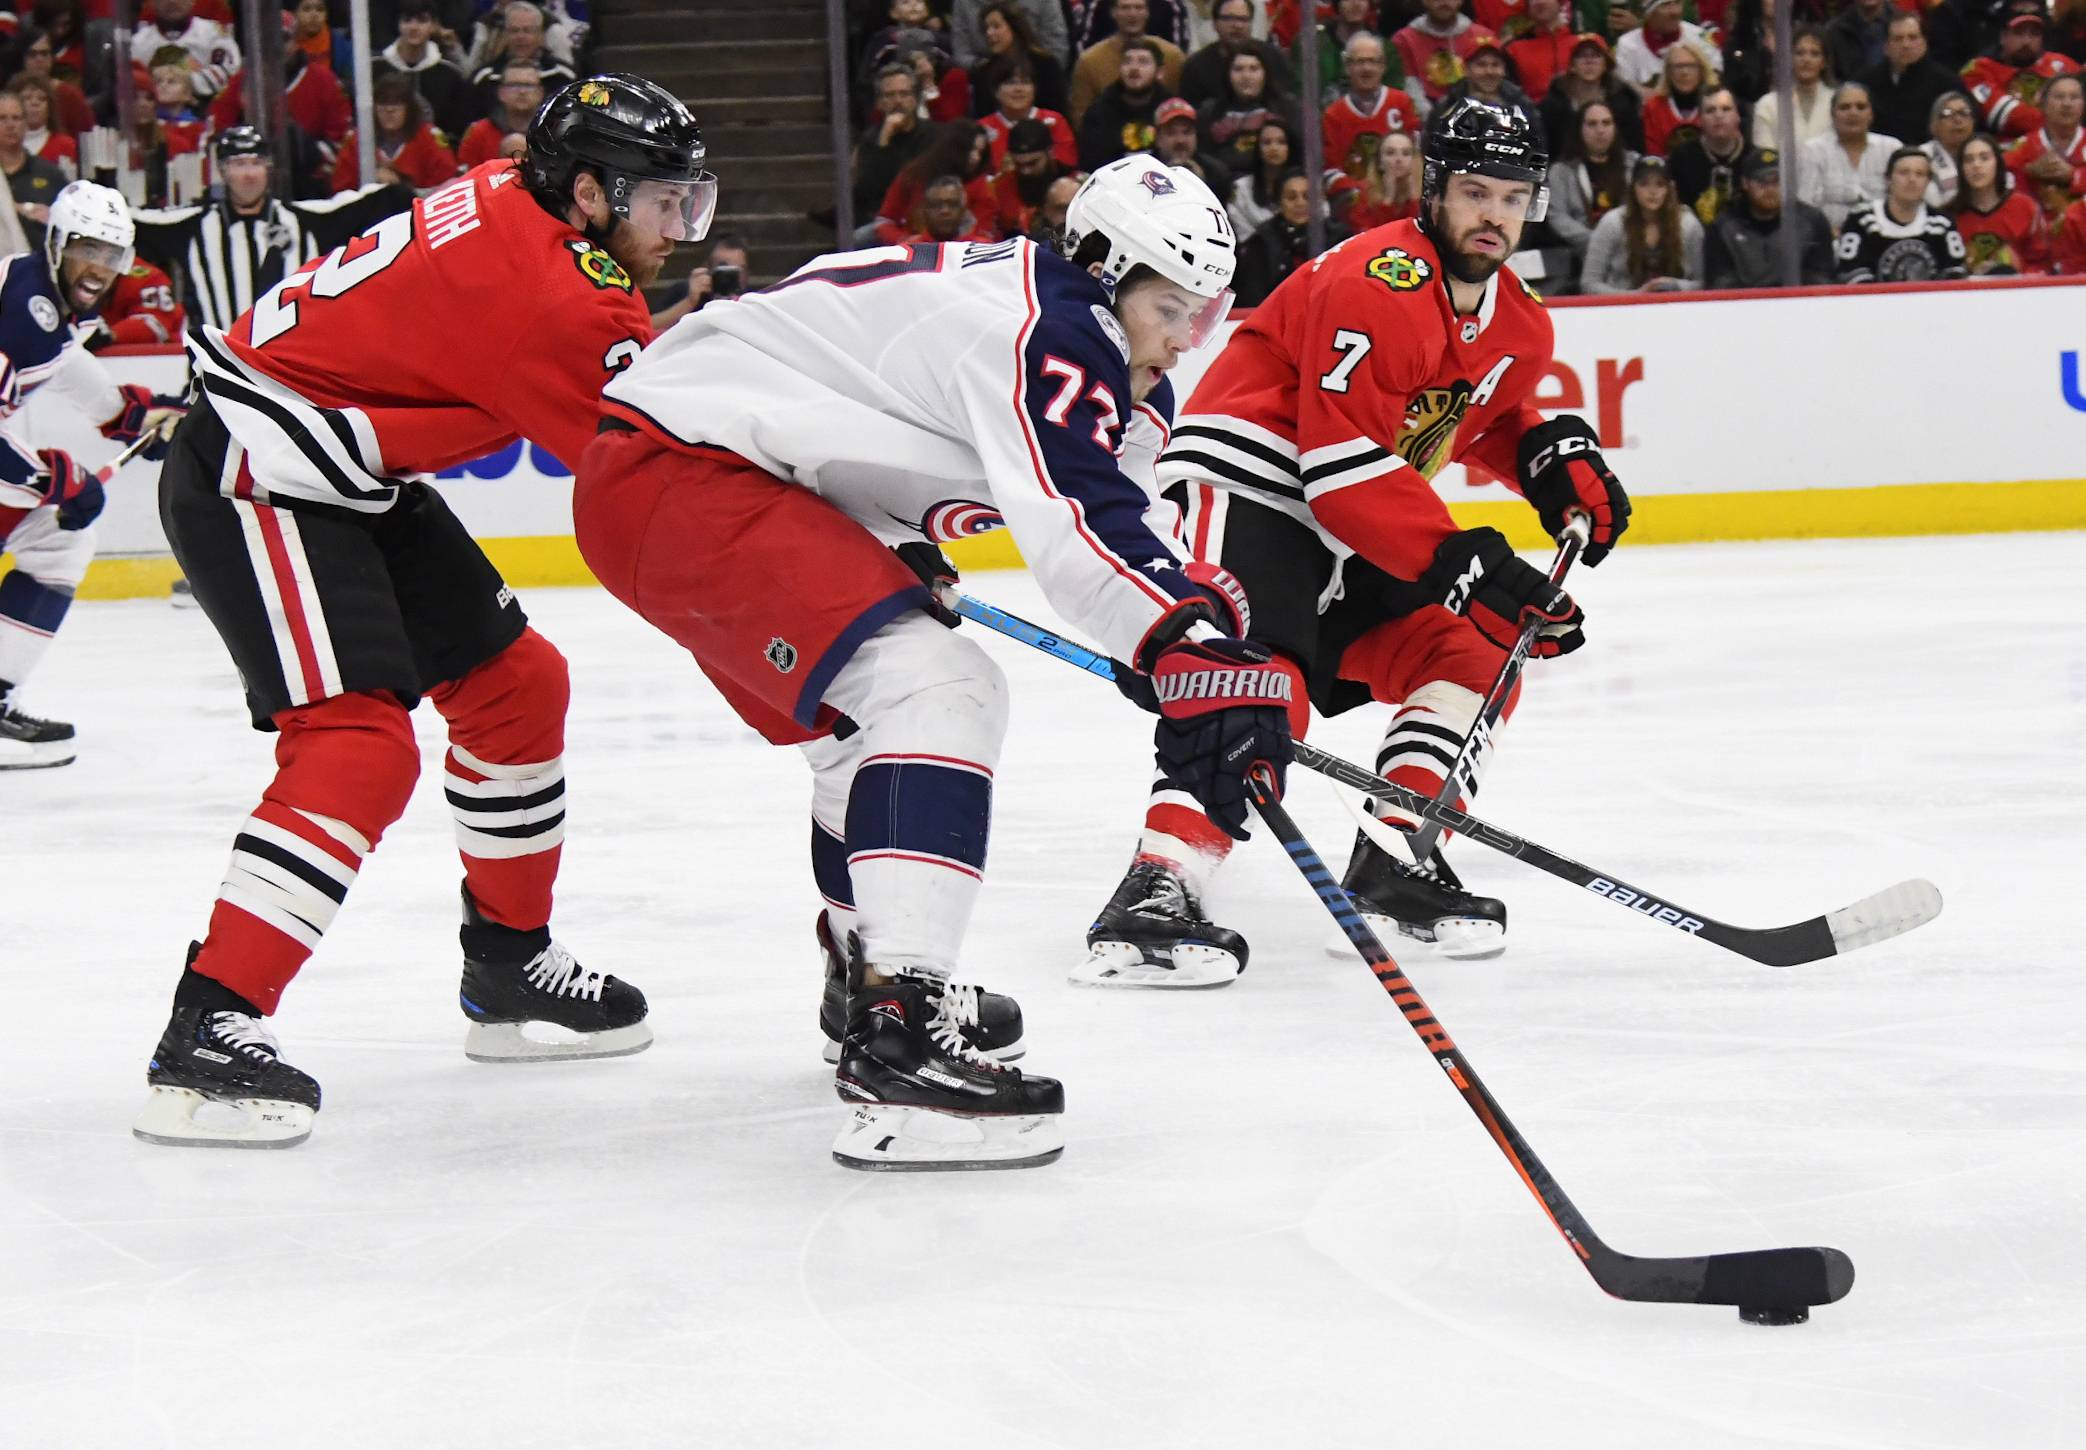 Columbus Blue Jackets right wing Josh Anderson (77) fights for the puck against Chicago Blackhawks defensemen Duncan Keith (2) and Brent Seabrook (7) during the first period of an NHL hockey game Saturday, Feb. 16, 2019, in Chicago. (AP Photo/Matt Marton)